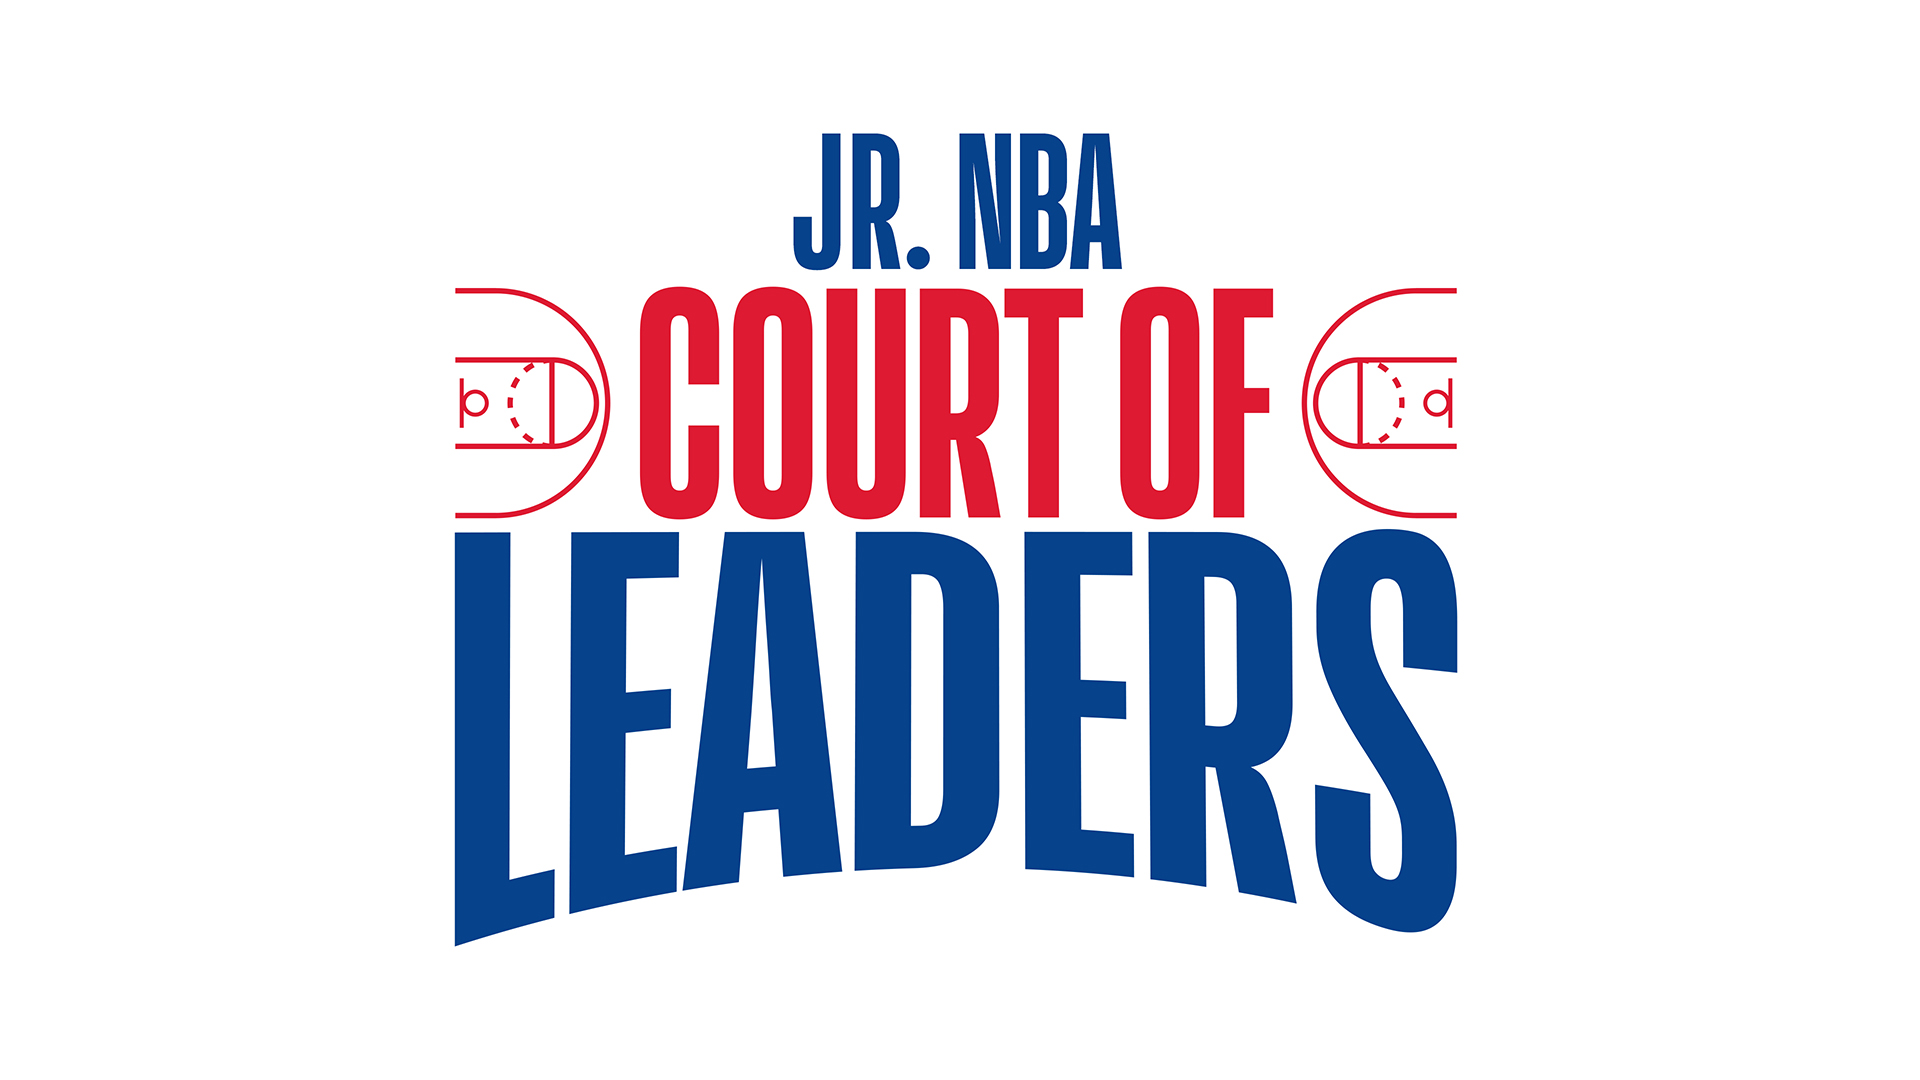 Launch of new youth leadership council headlines Jr. NBA Week